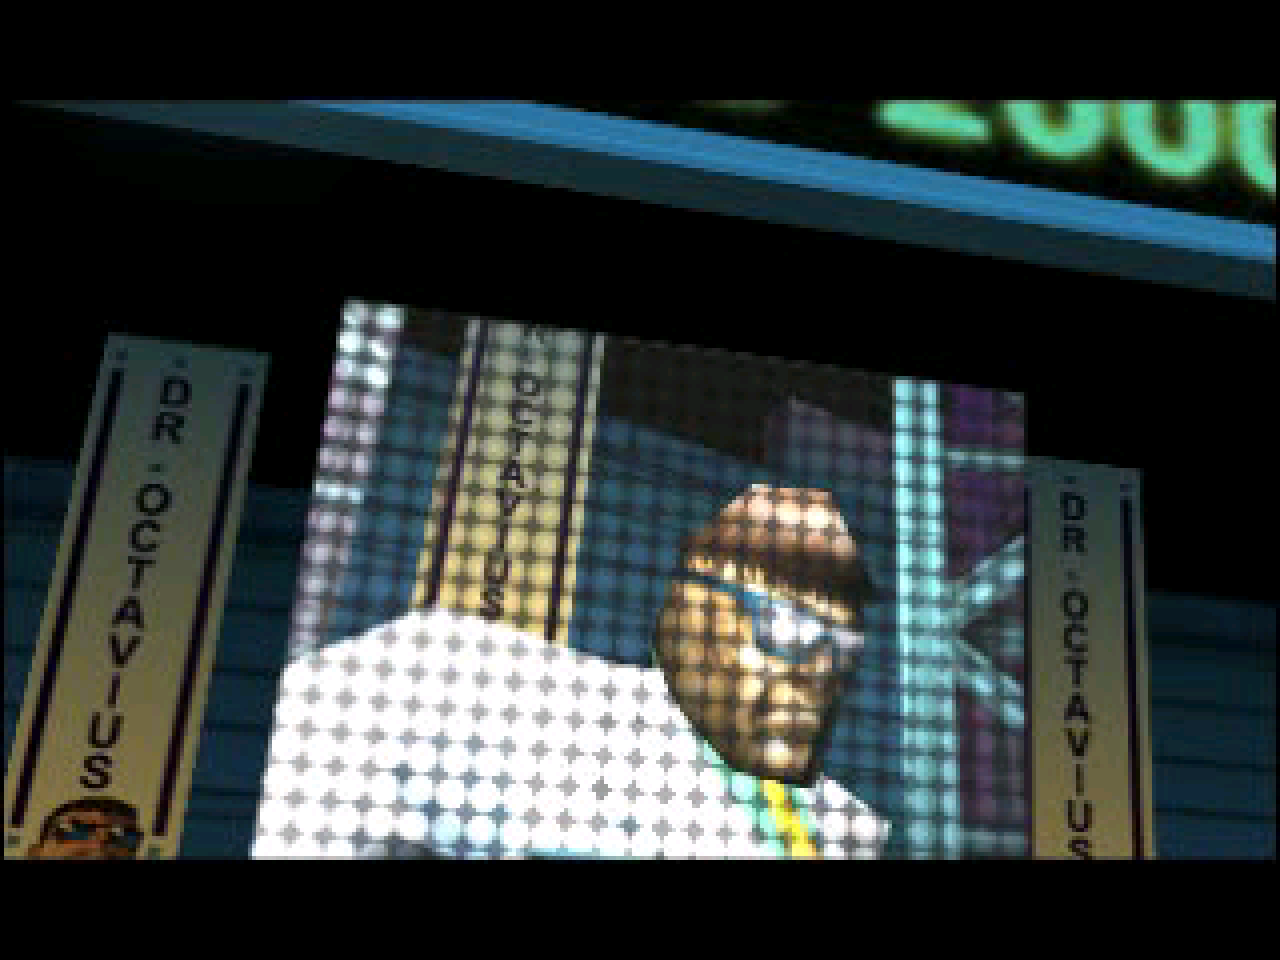 https://s3.eu-west-3.amazonaws.com/games.anthony-dessalles.com/Spider-Man PS1 2020 - Screenshots/Spider-Man-201125-182648.png